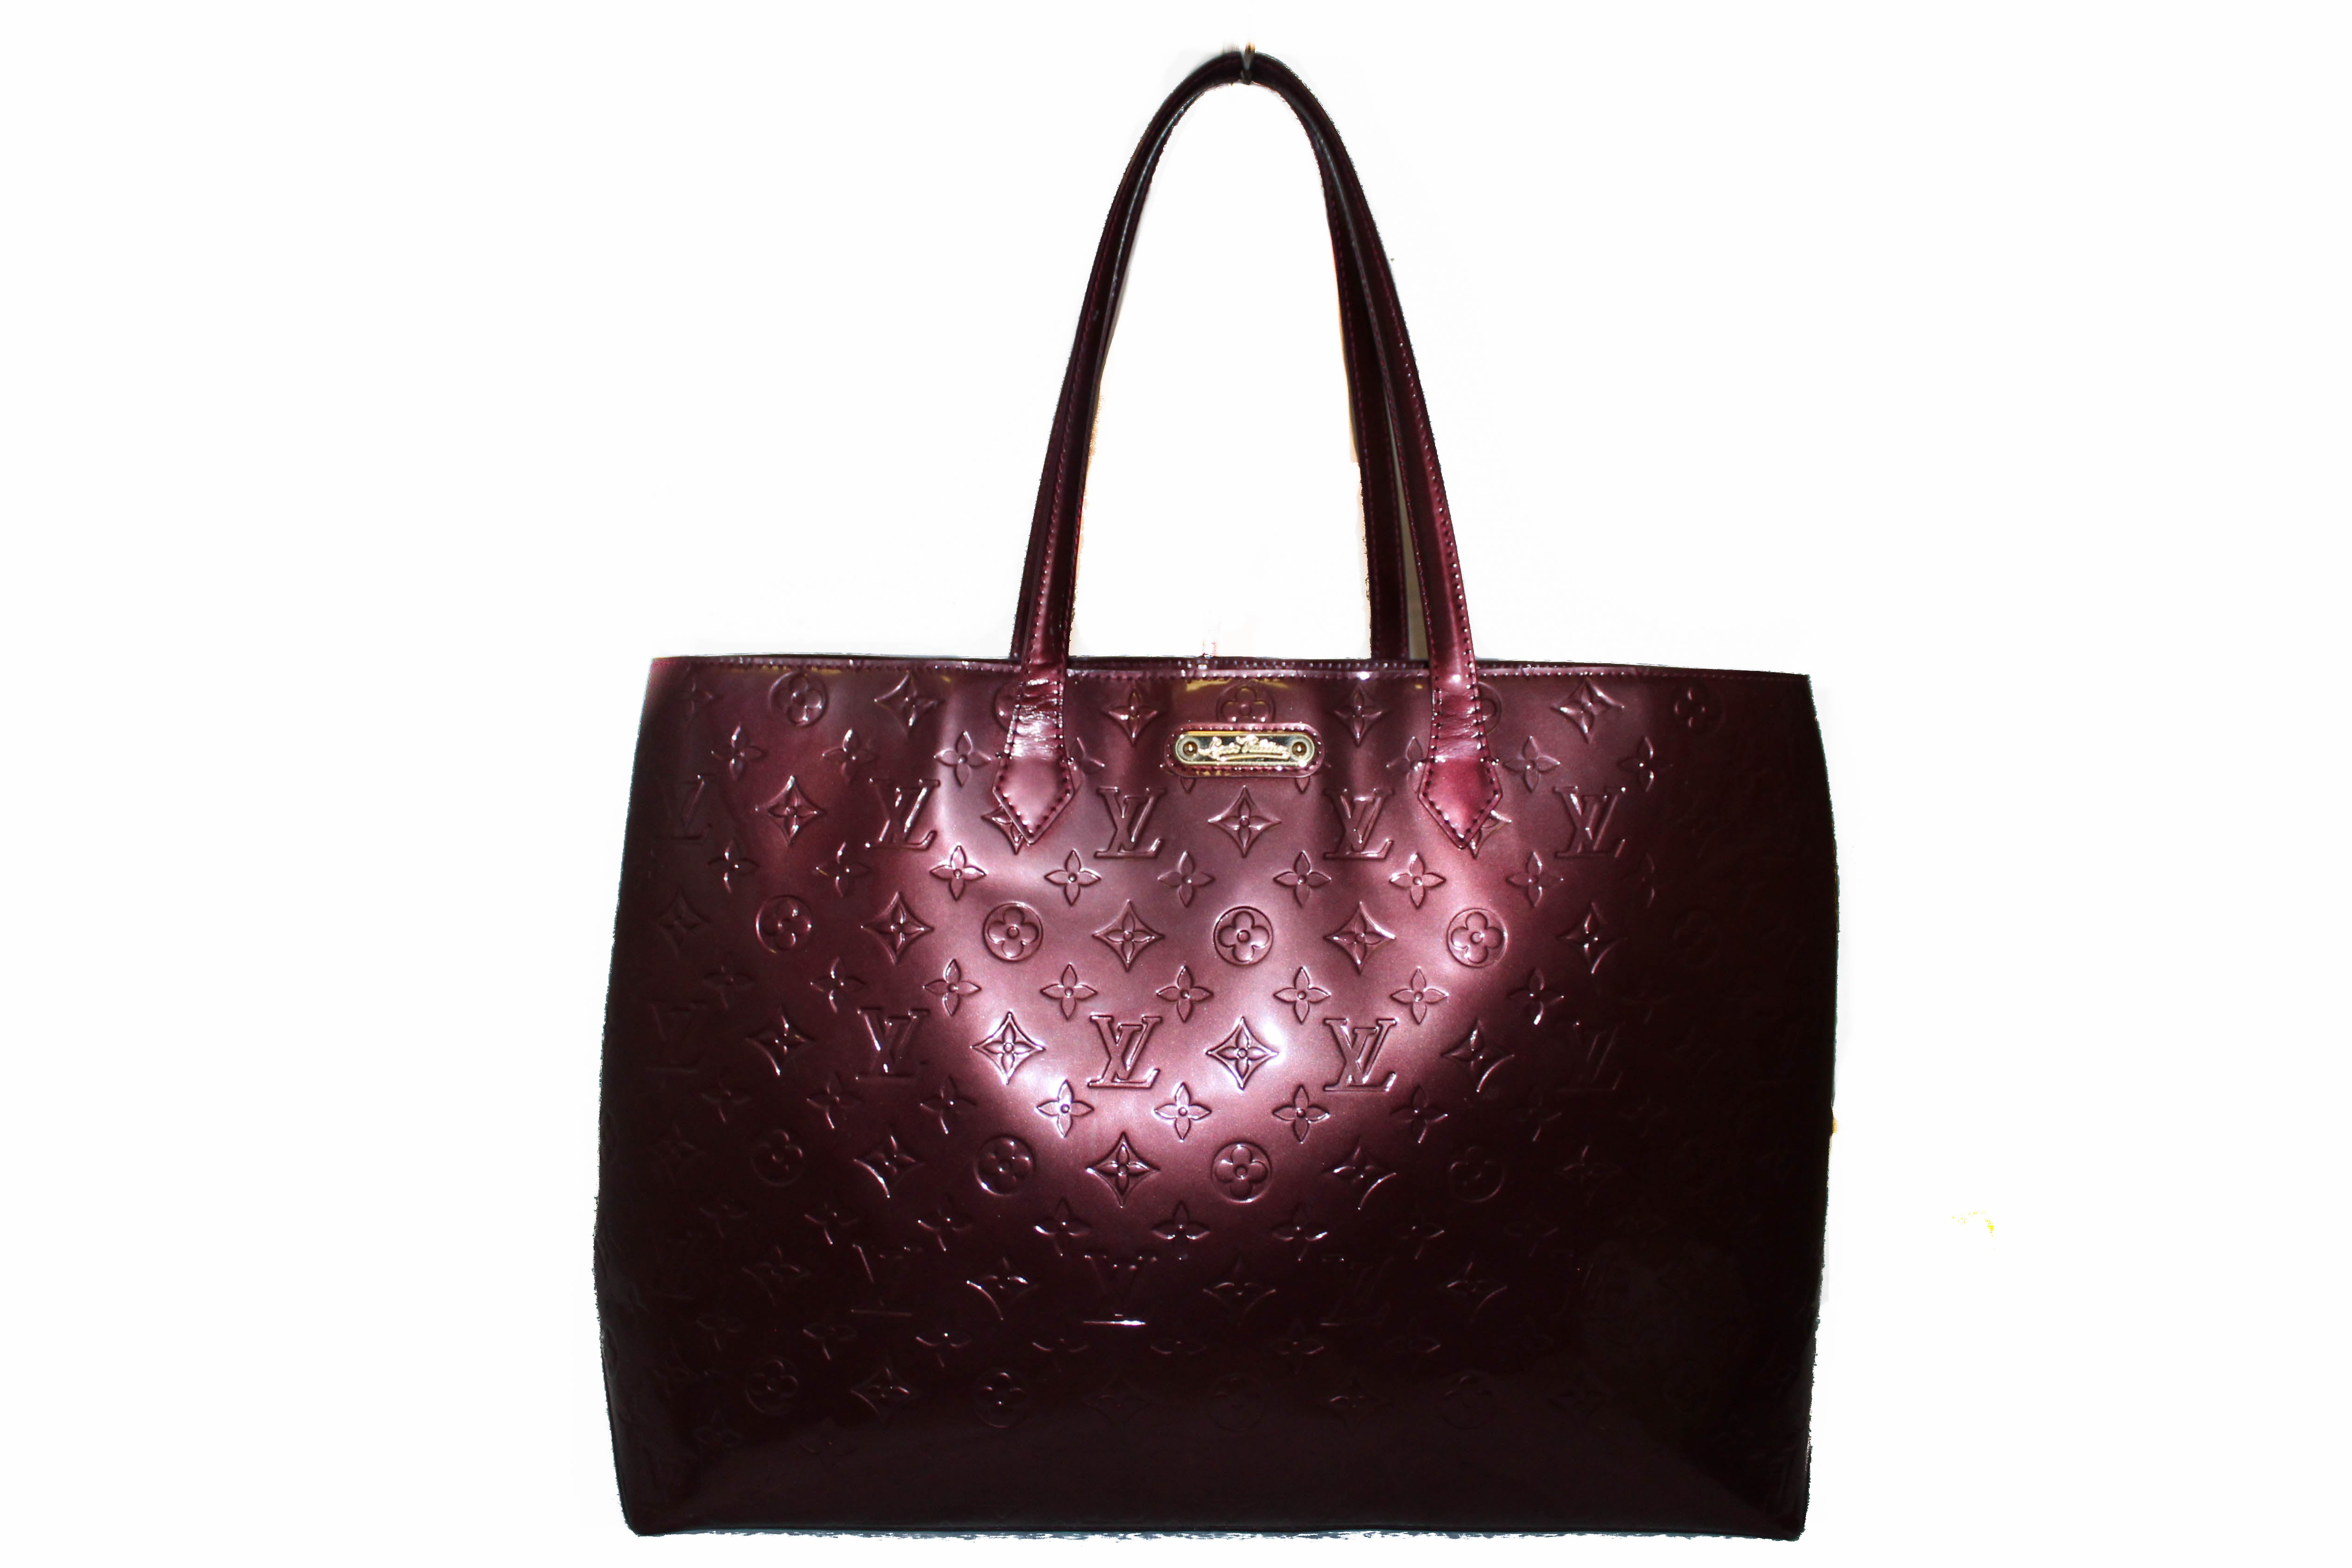 Authentic Louis Vuitton Purple Vernis Wilshire GM Tote Shoulder Bag